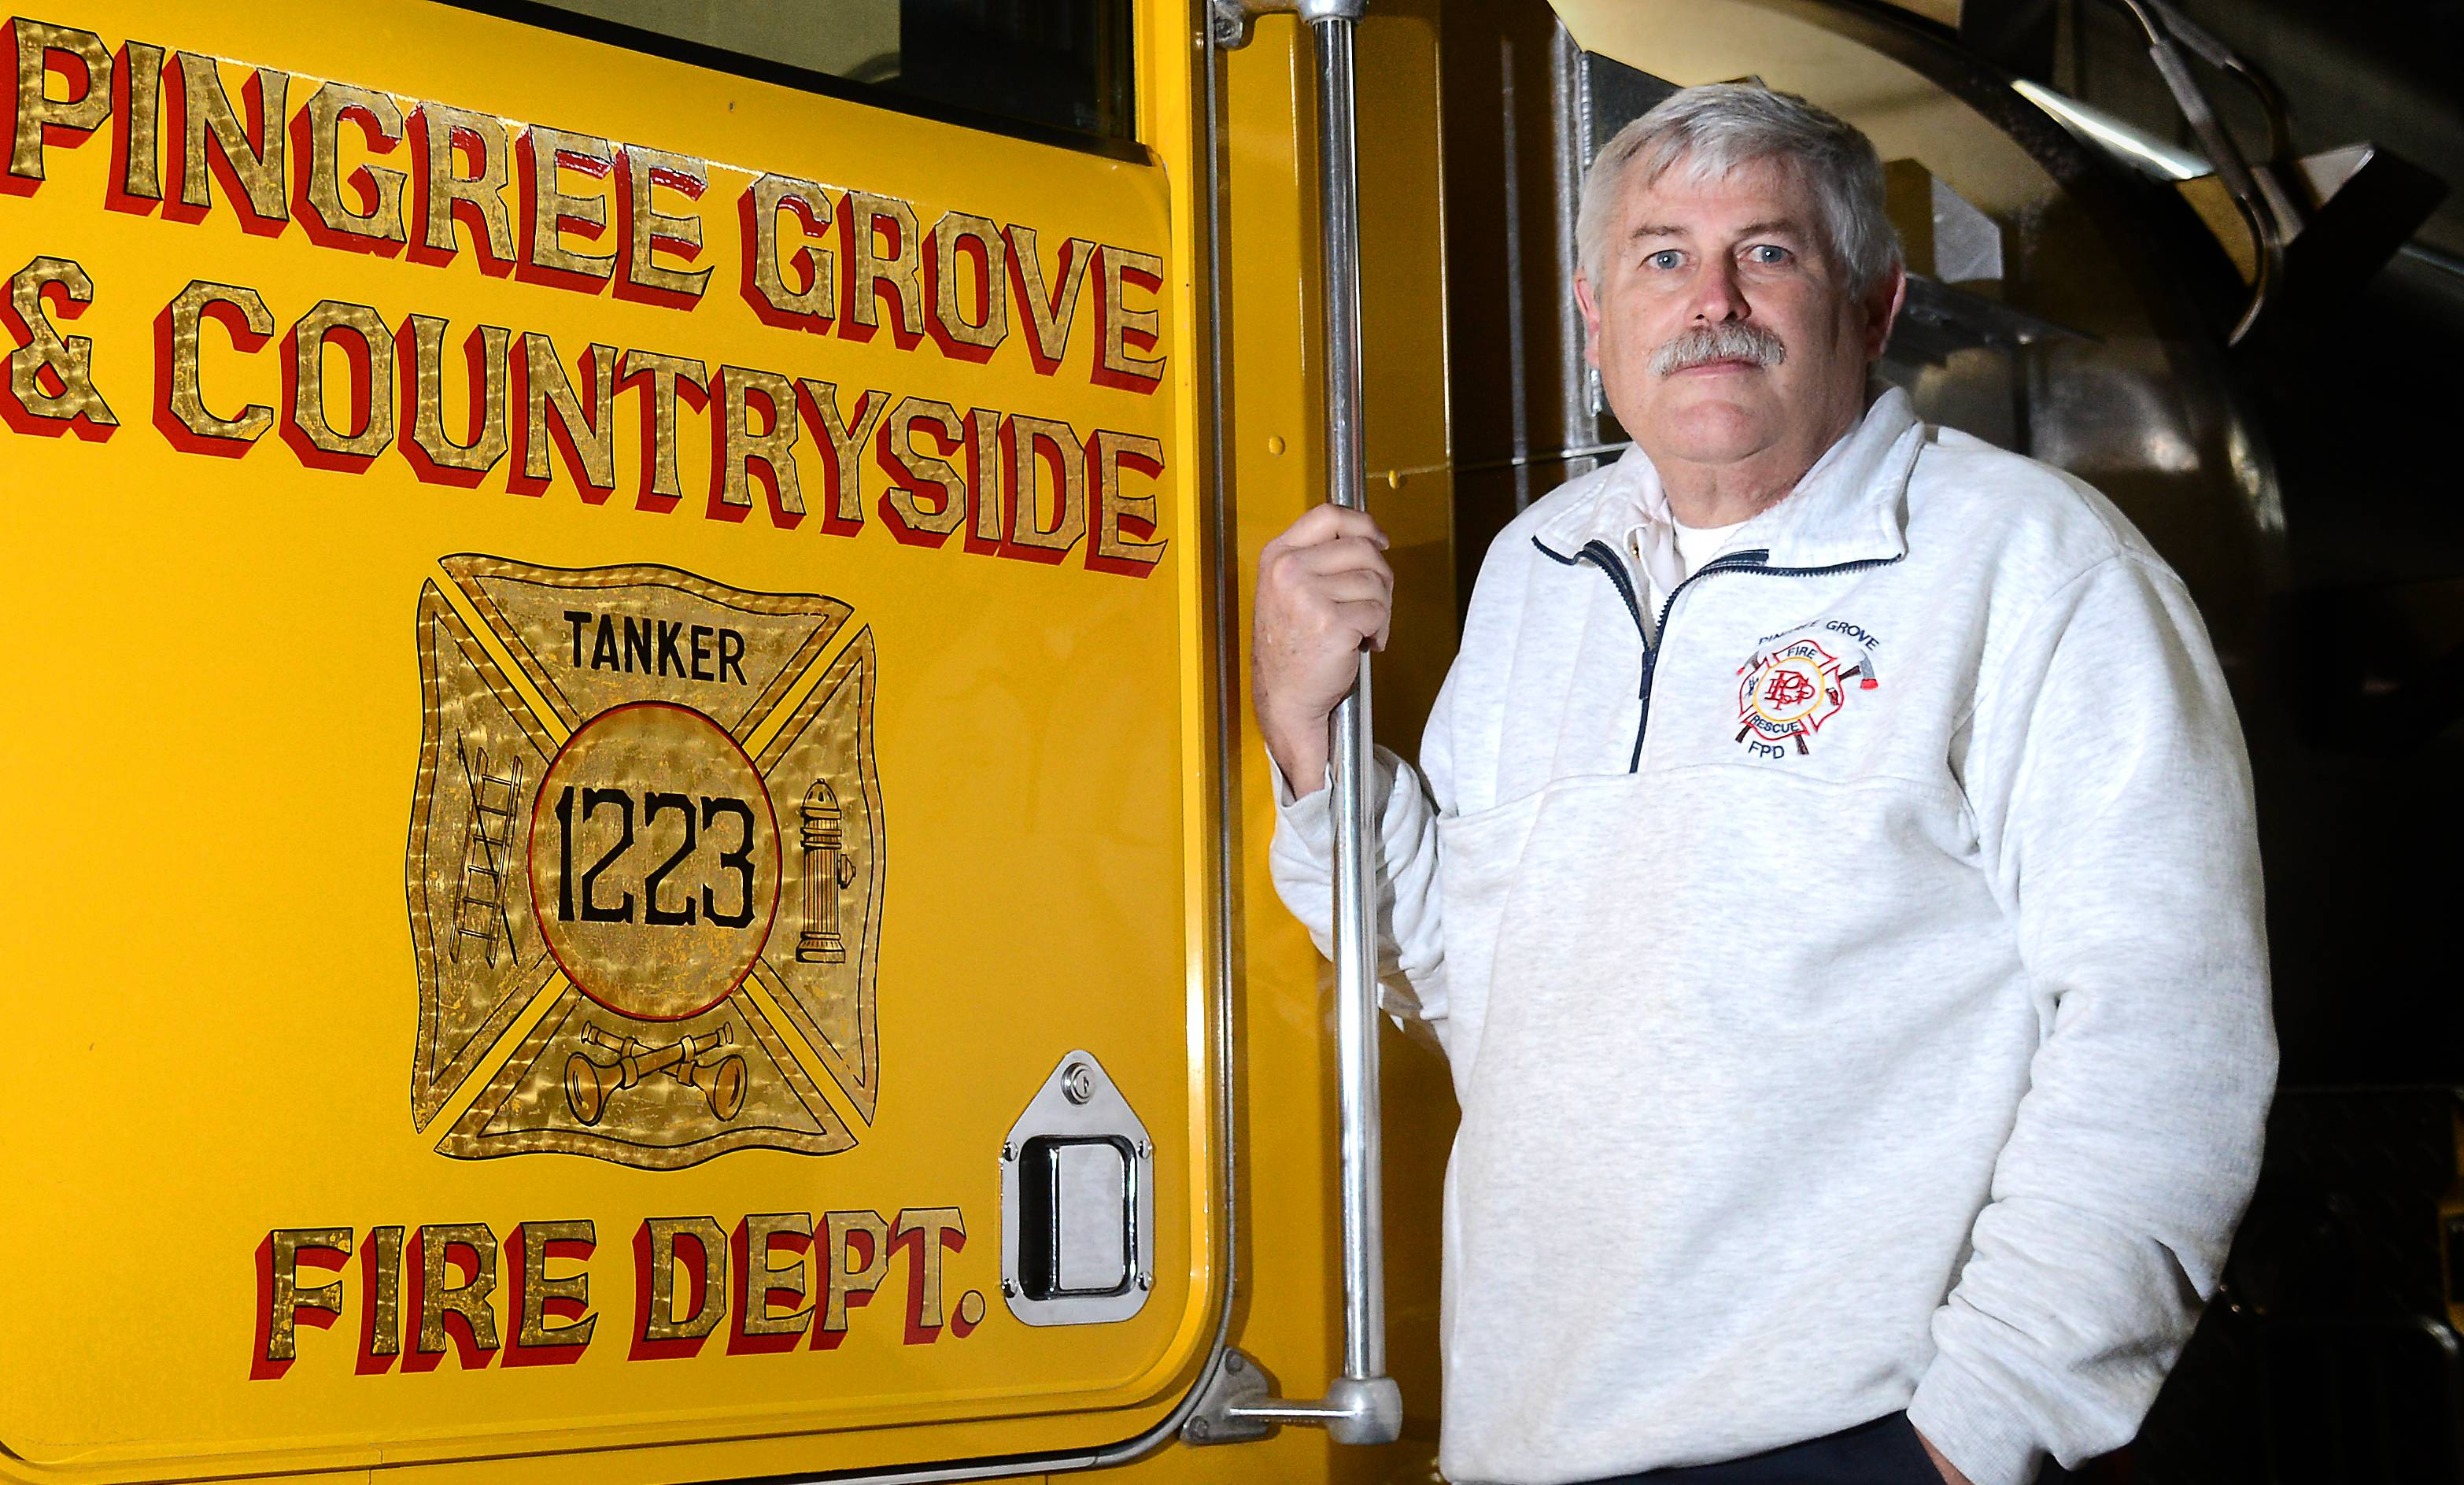 Pingree Grove Fire Chief Mitch Crocetti says he believes smaller departments will have trouble filling leadership positions if older firefighters aren't allowed to participate in multiple pension programs.